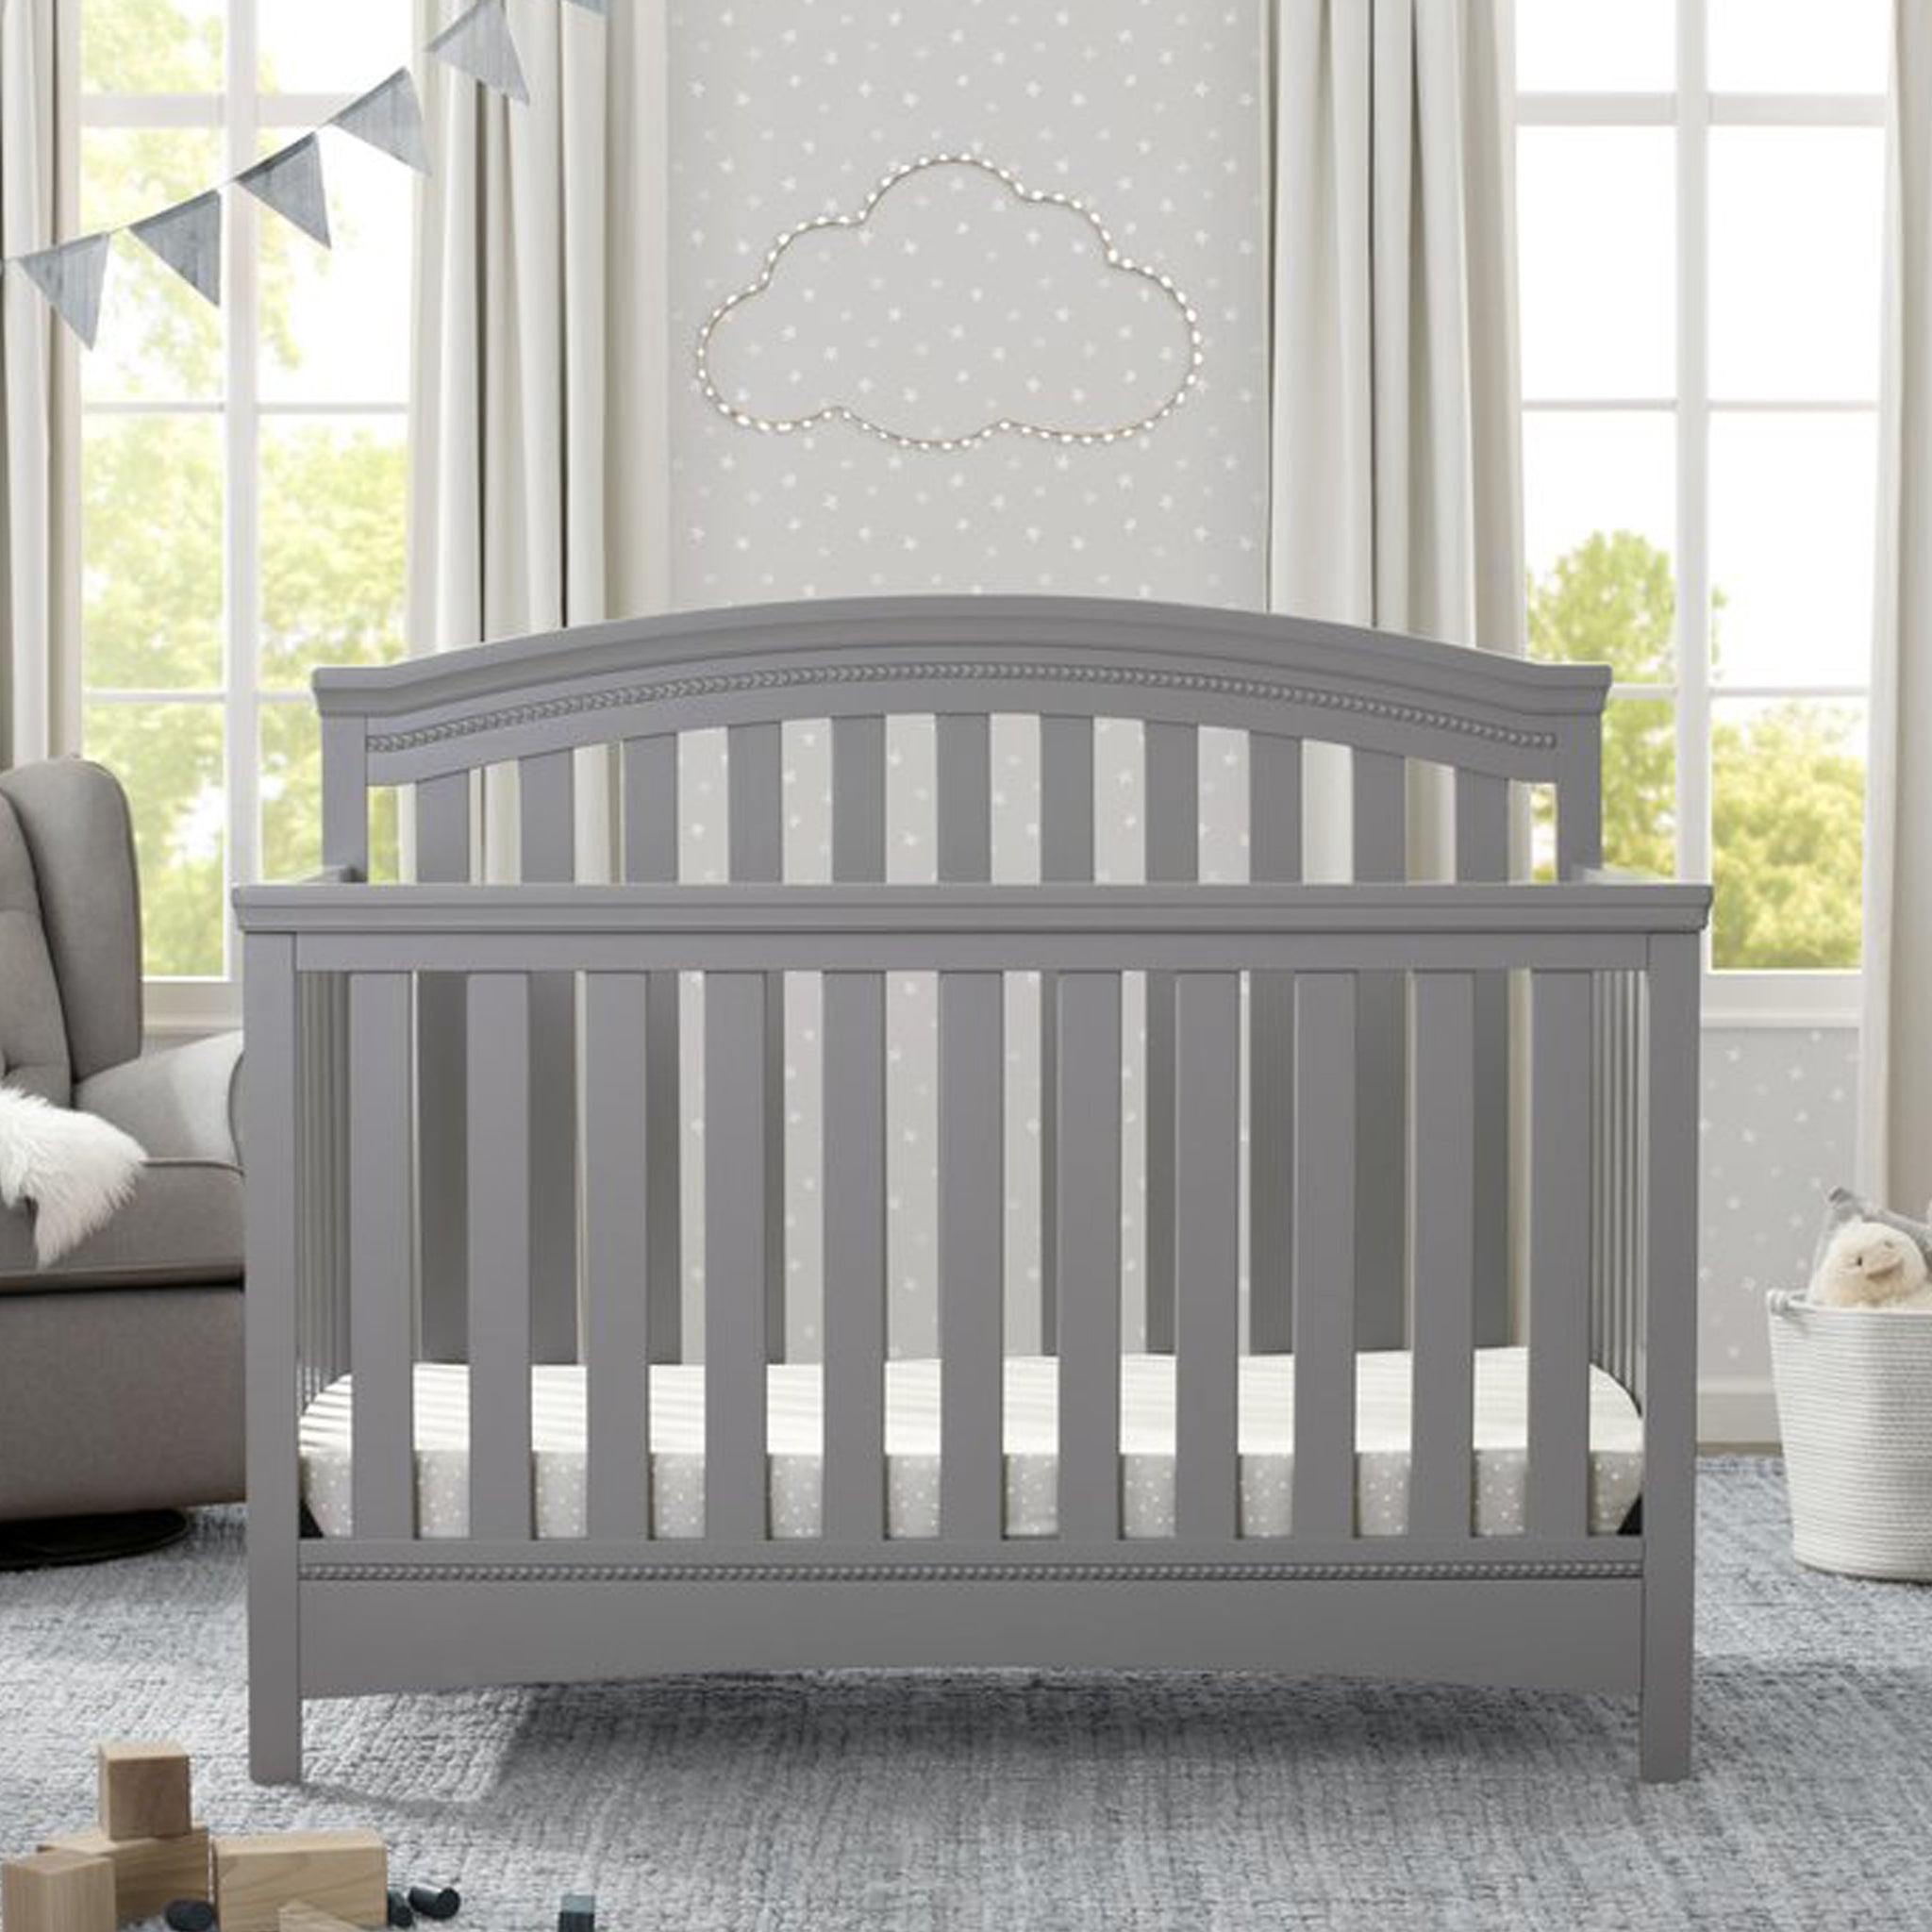 Emerson 4-in-1 Crib